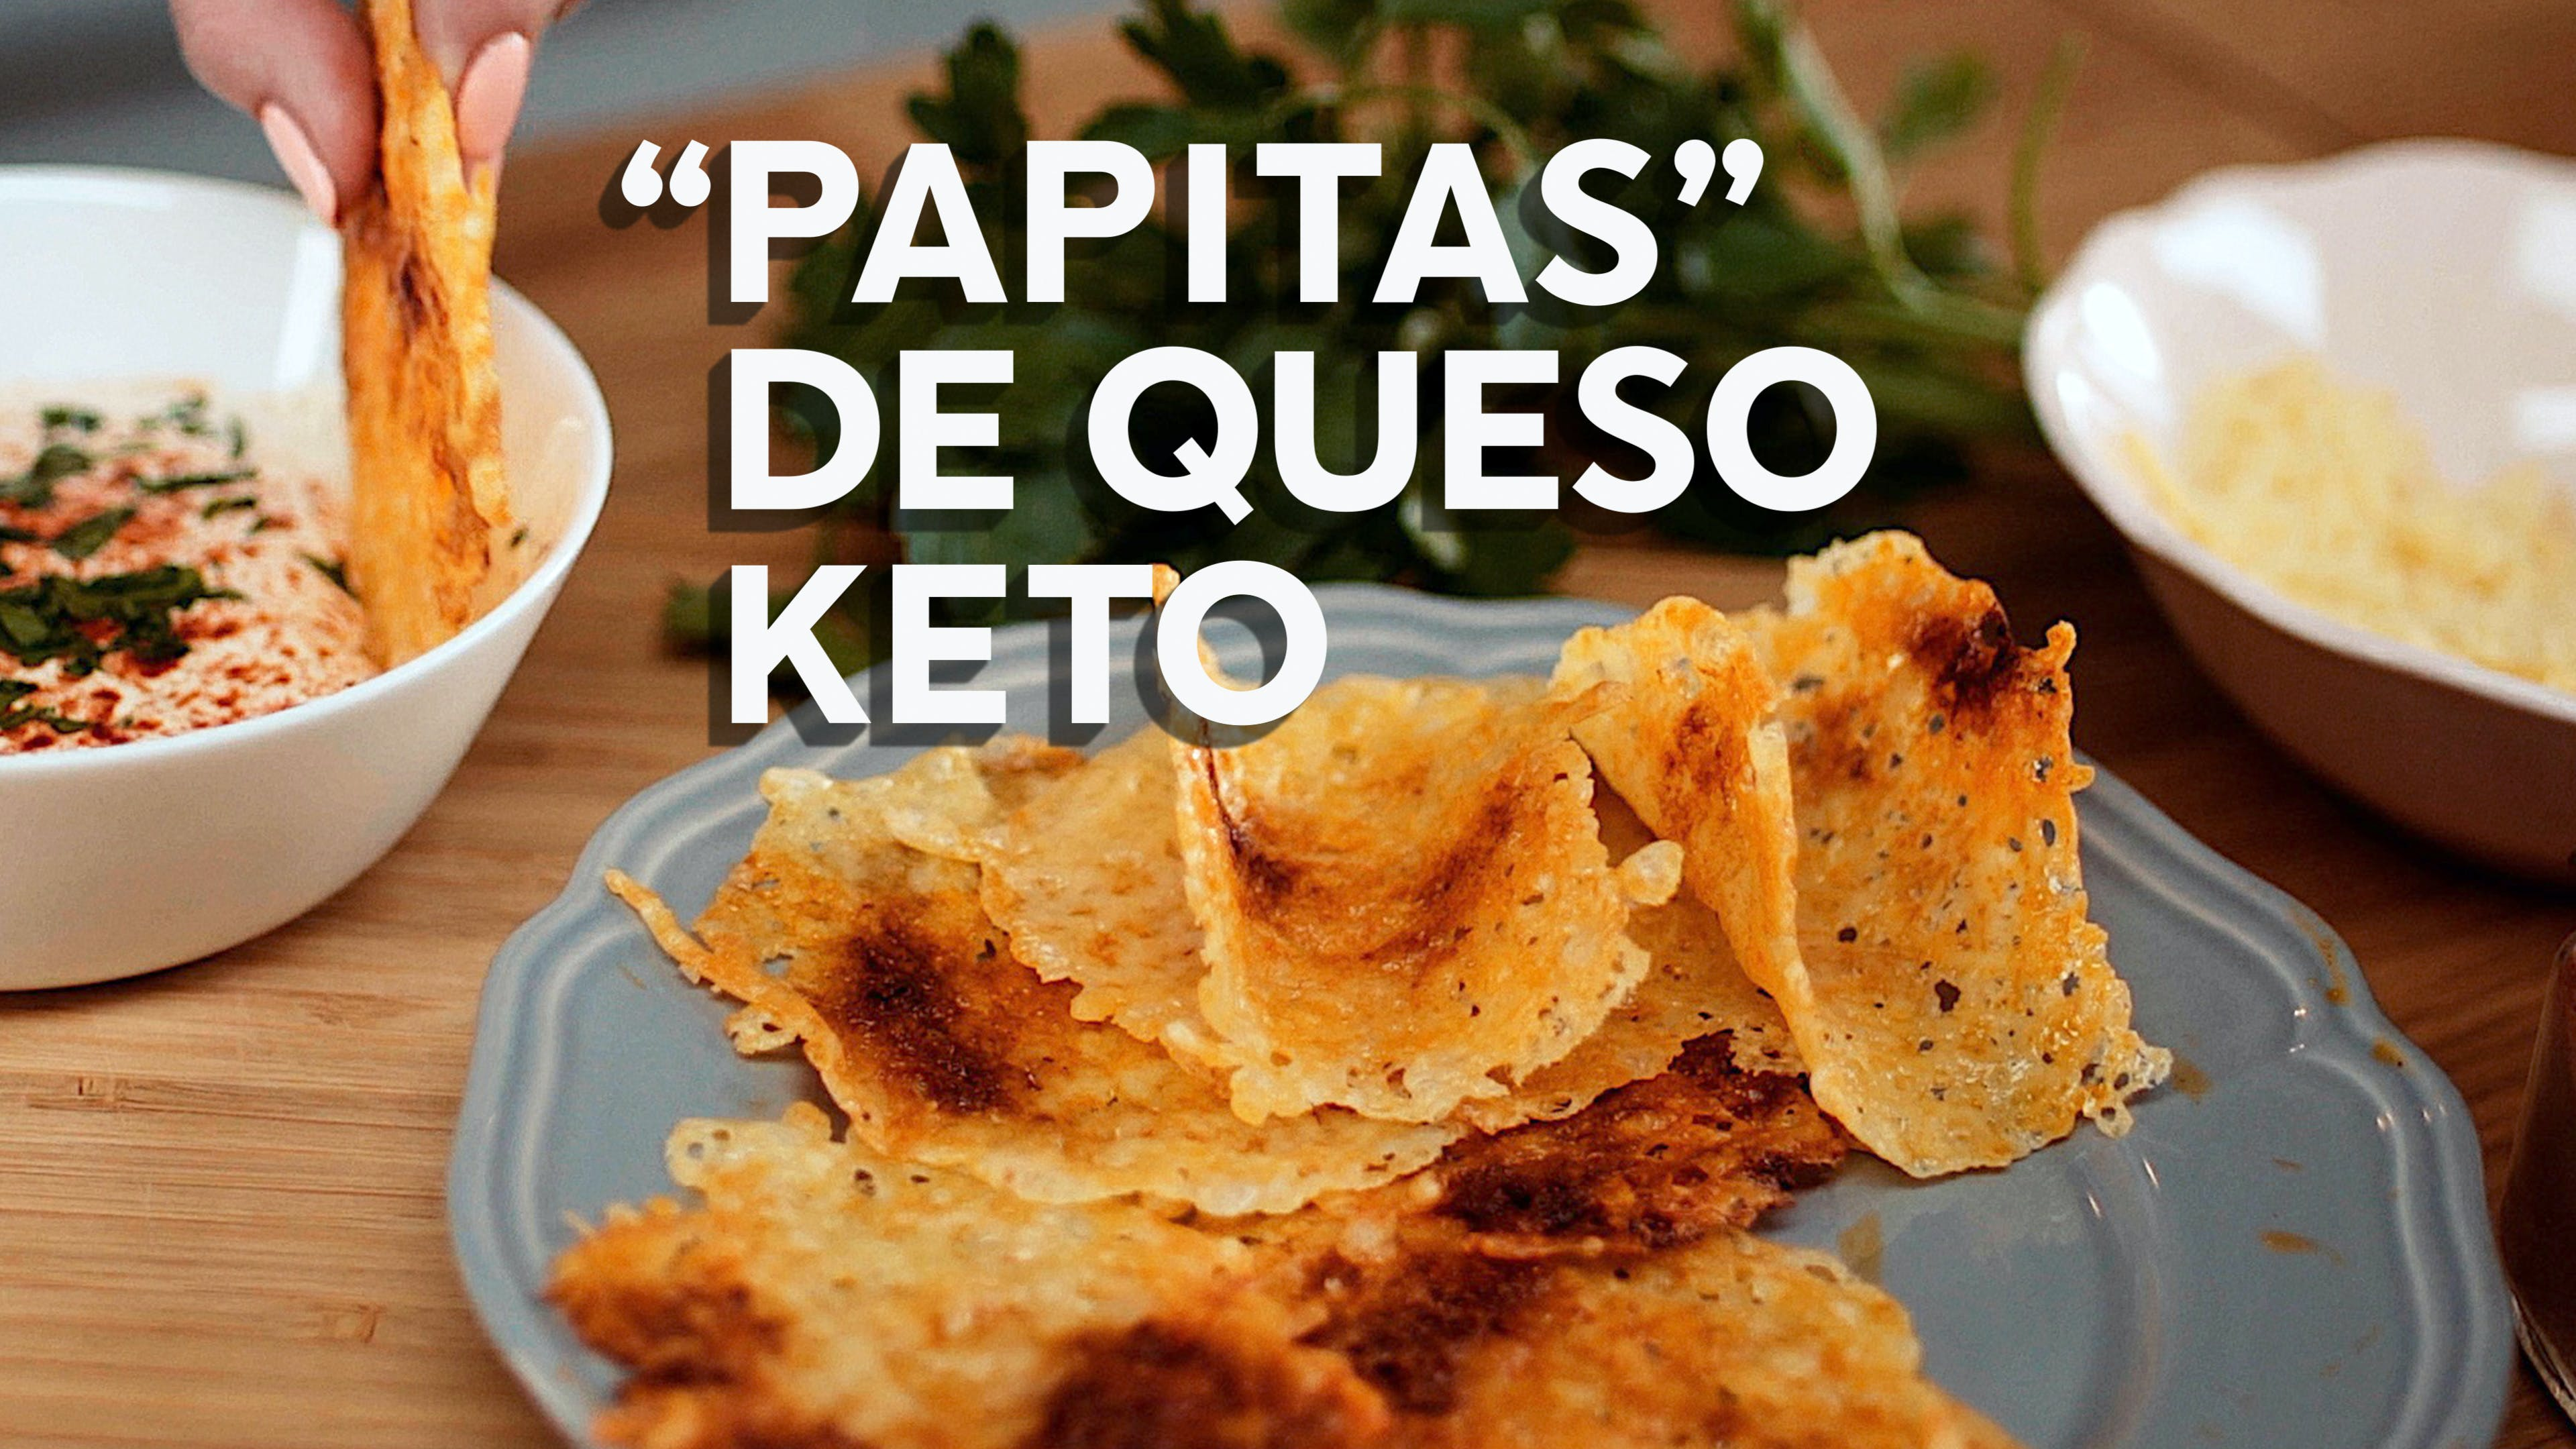 """Papitas"" de queso keto, receta en video"